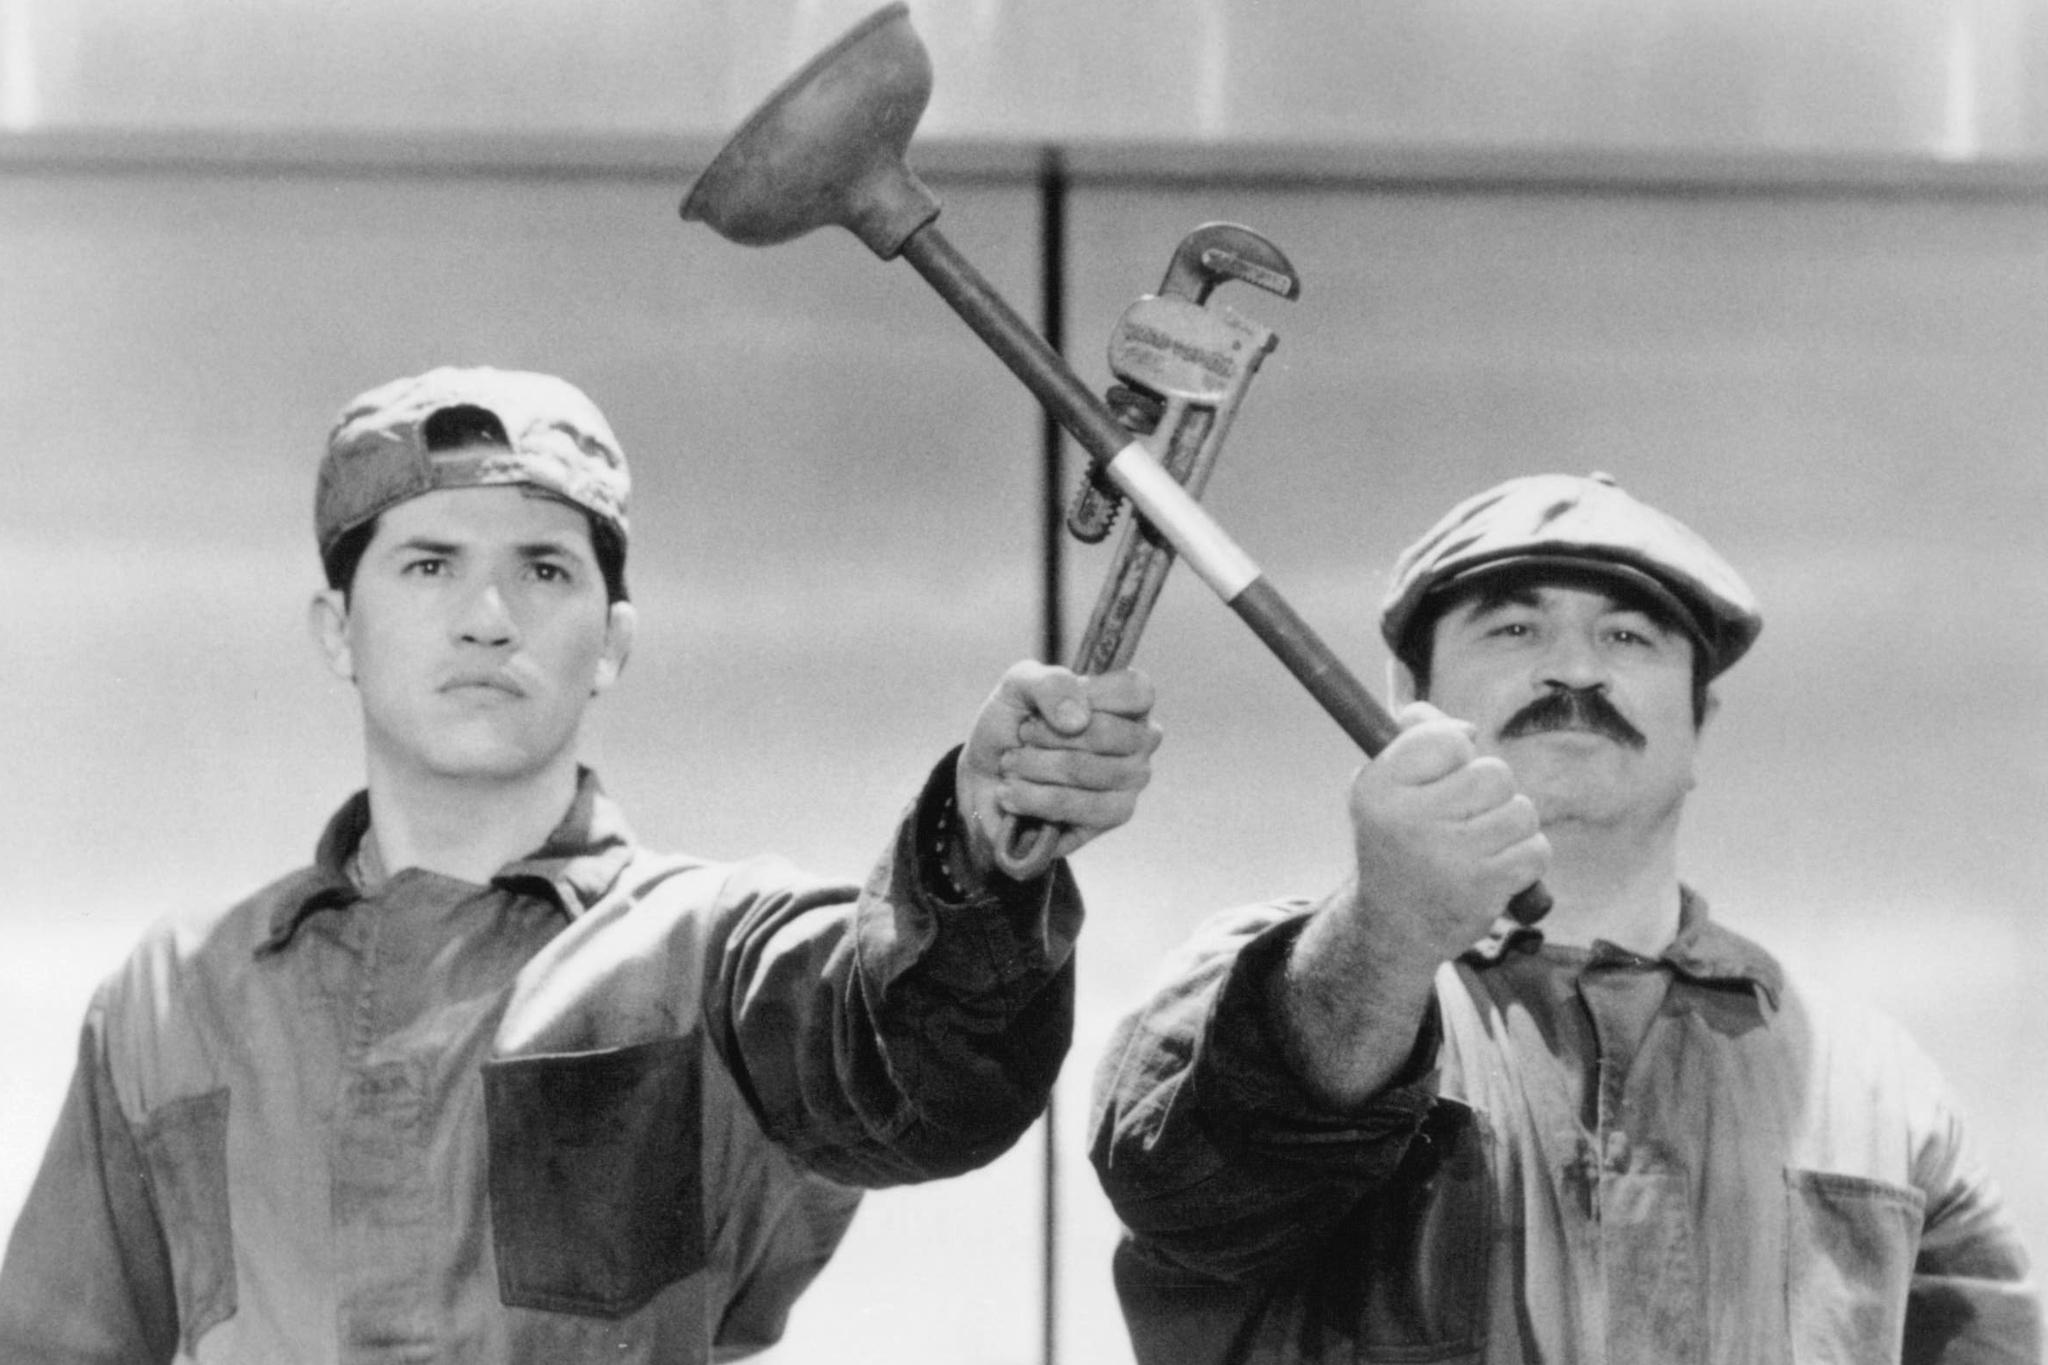 still-of-john-leguizamo-and-bob-hoskins-in-super-mario-bros.-(1993)